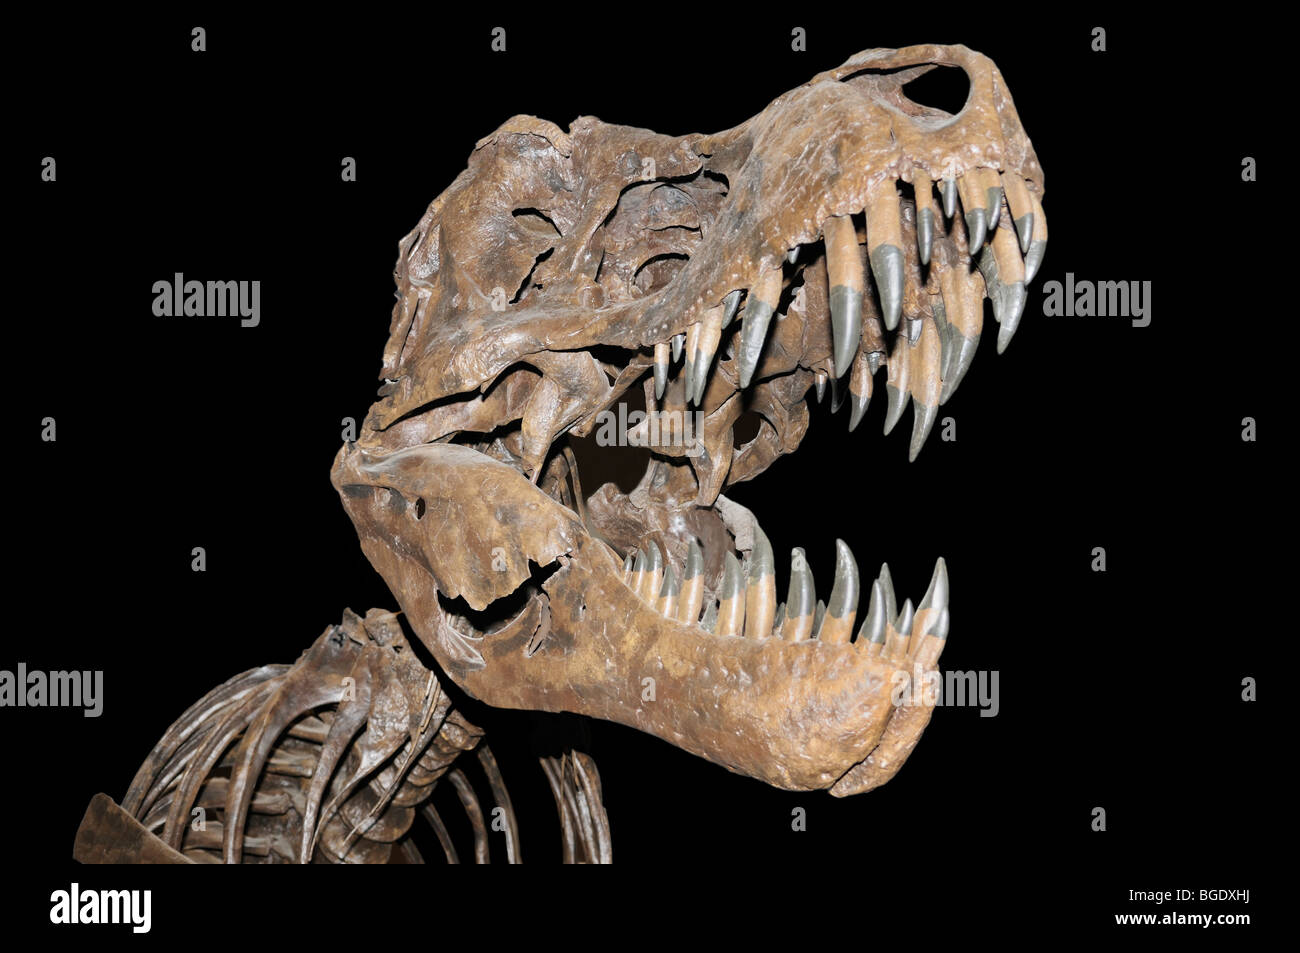 Tyrannosaurus rex skeleton (cast) from the late Cretaceous - Stock Image